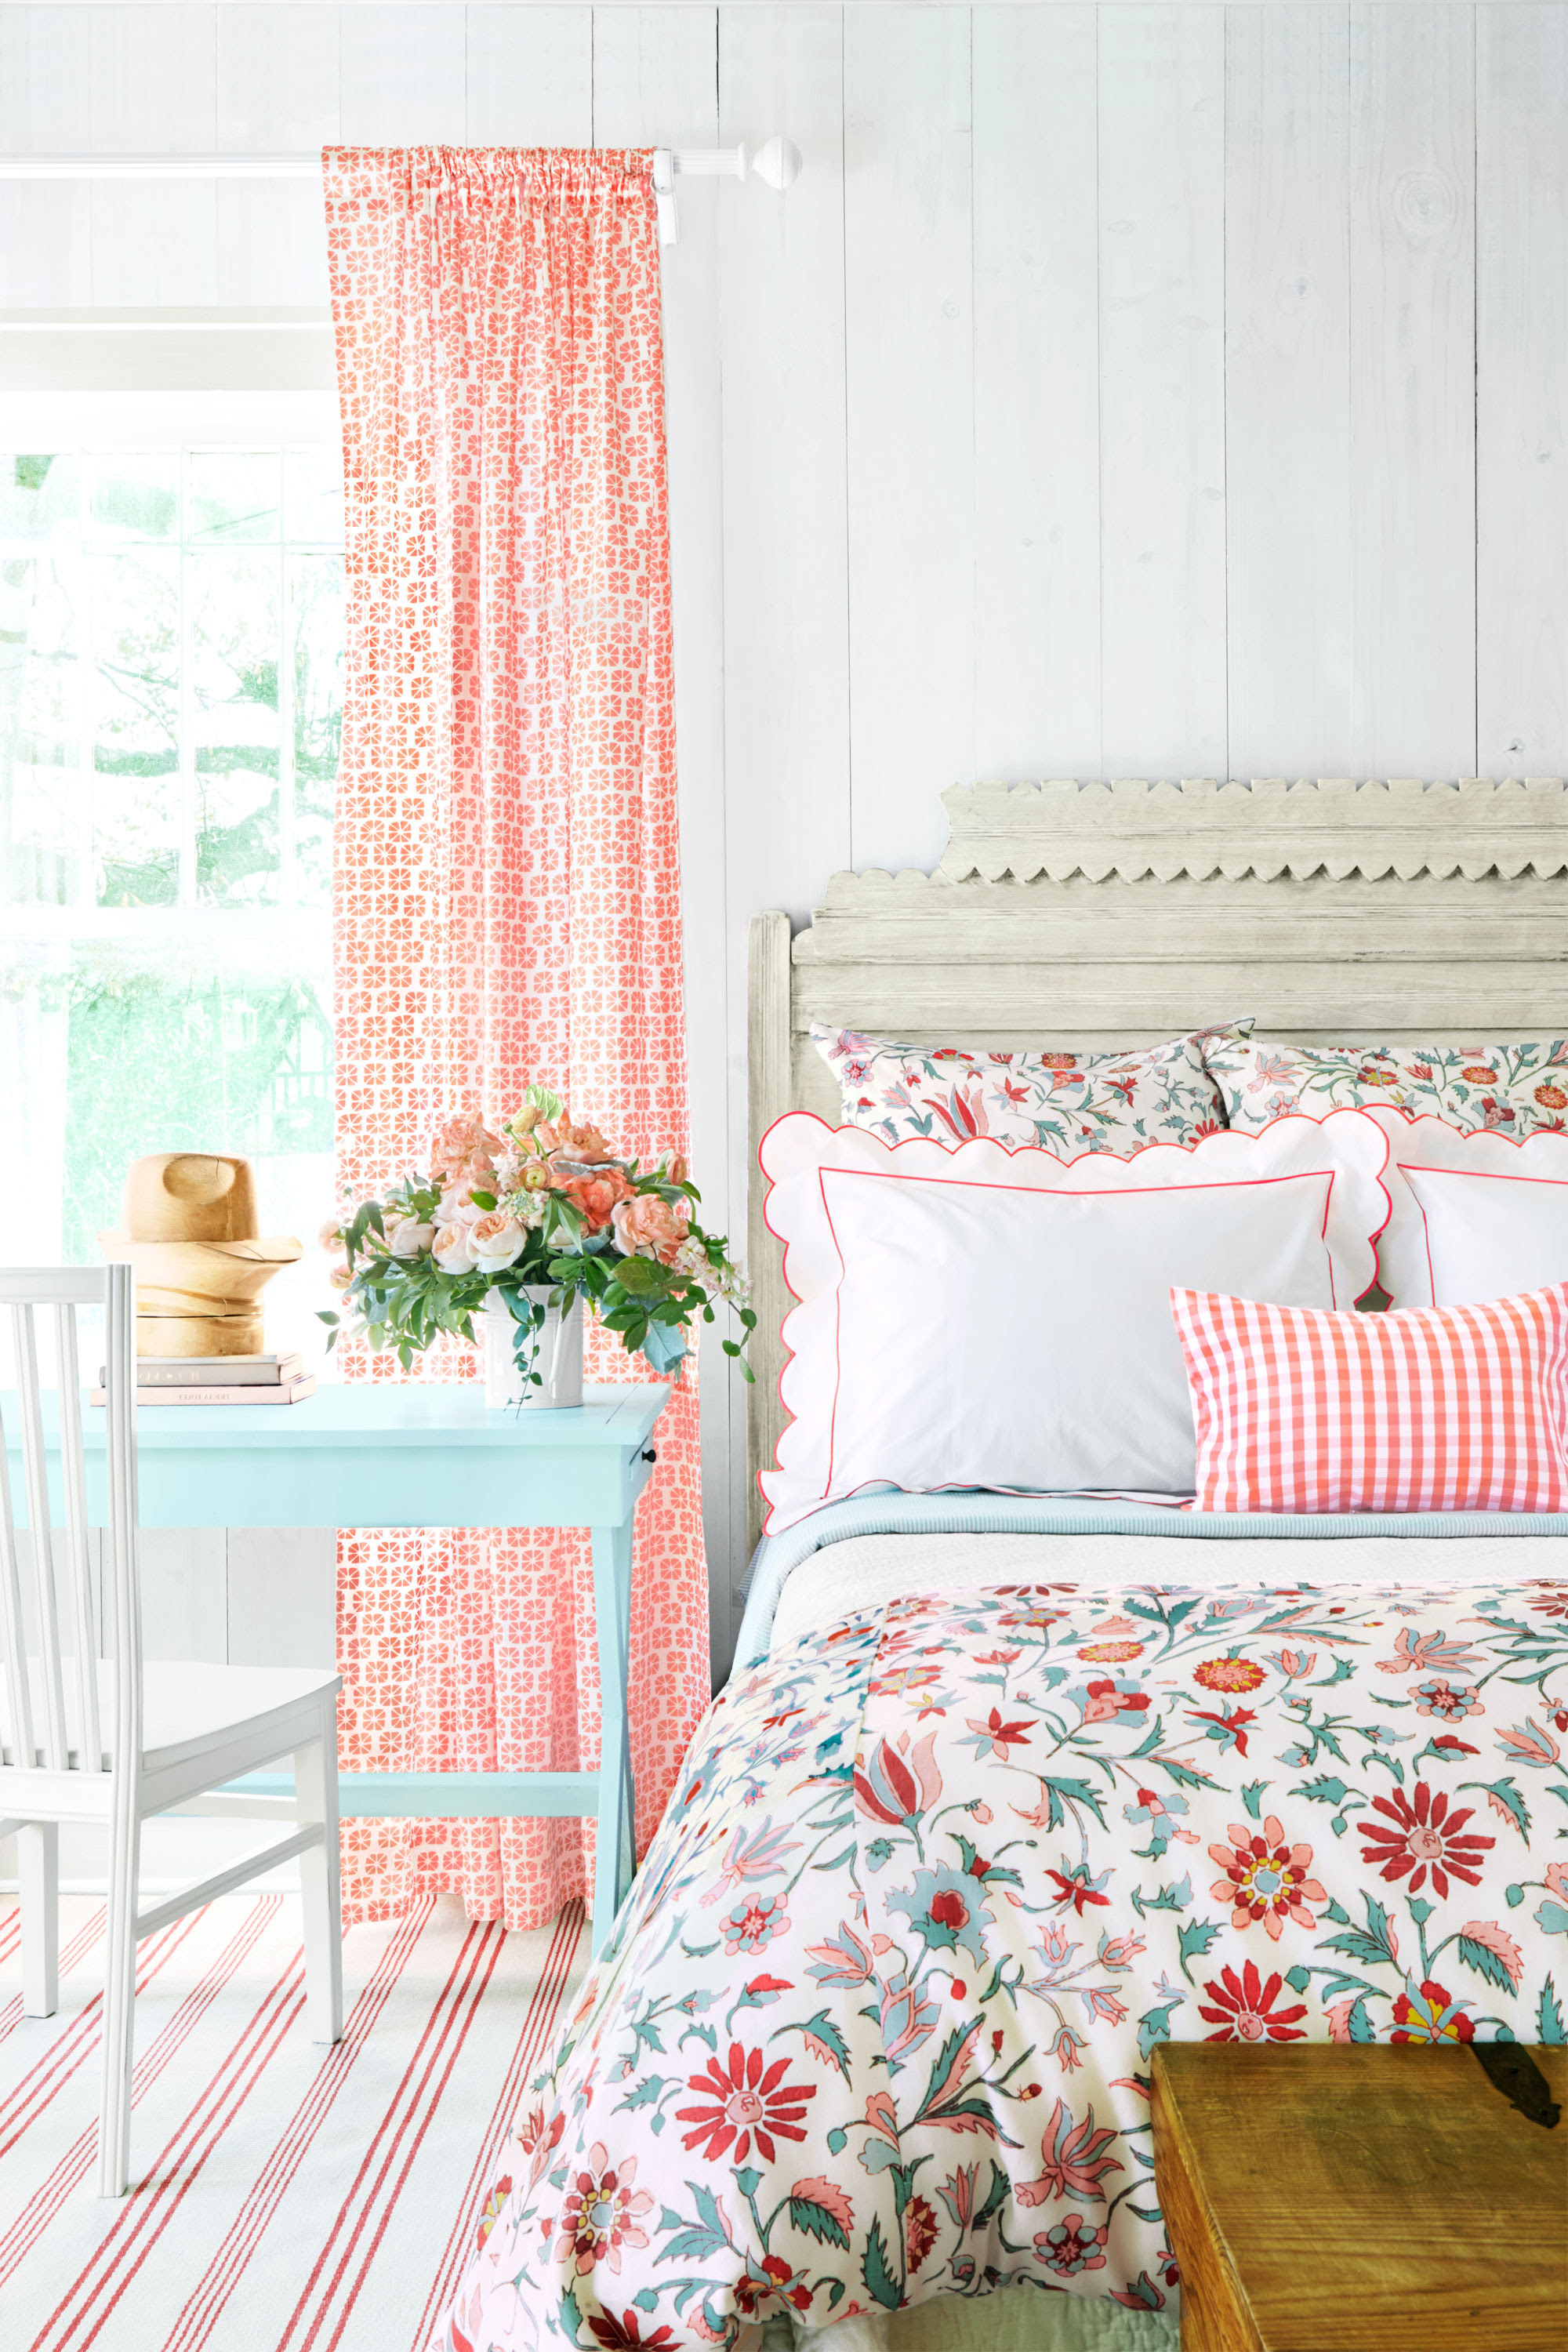 Bedroom Ideas For A Cottage | Home Decor